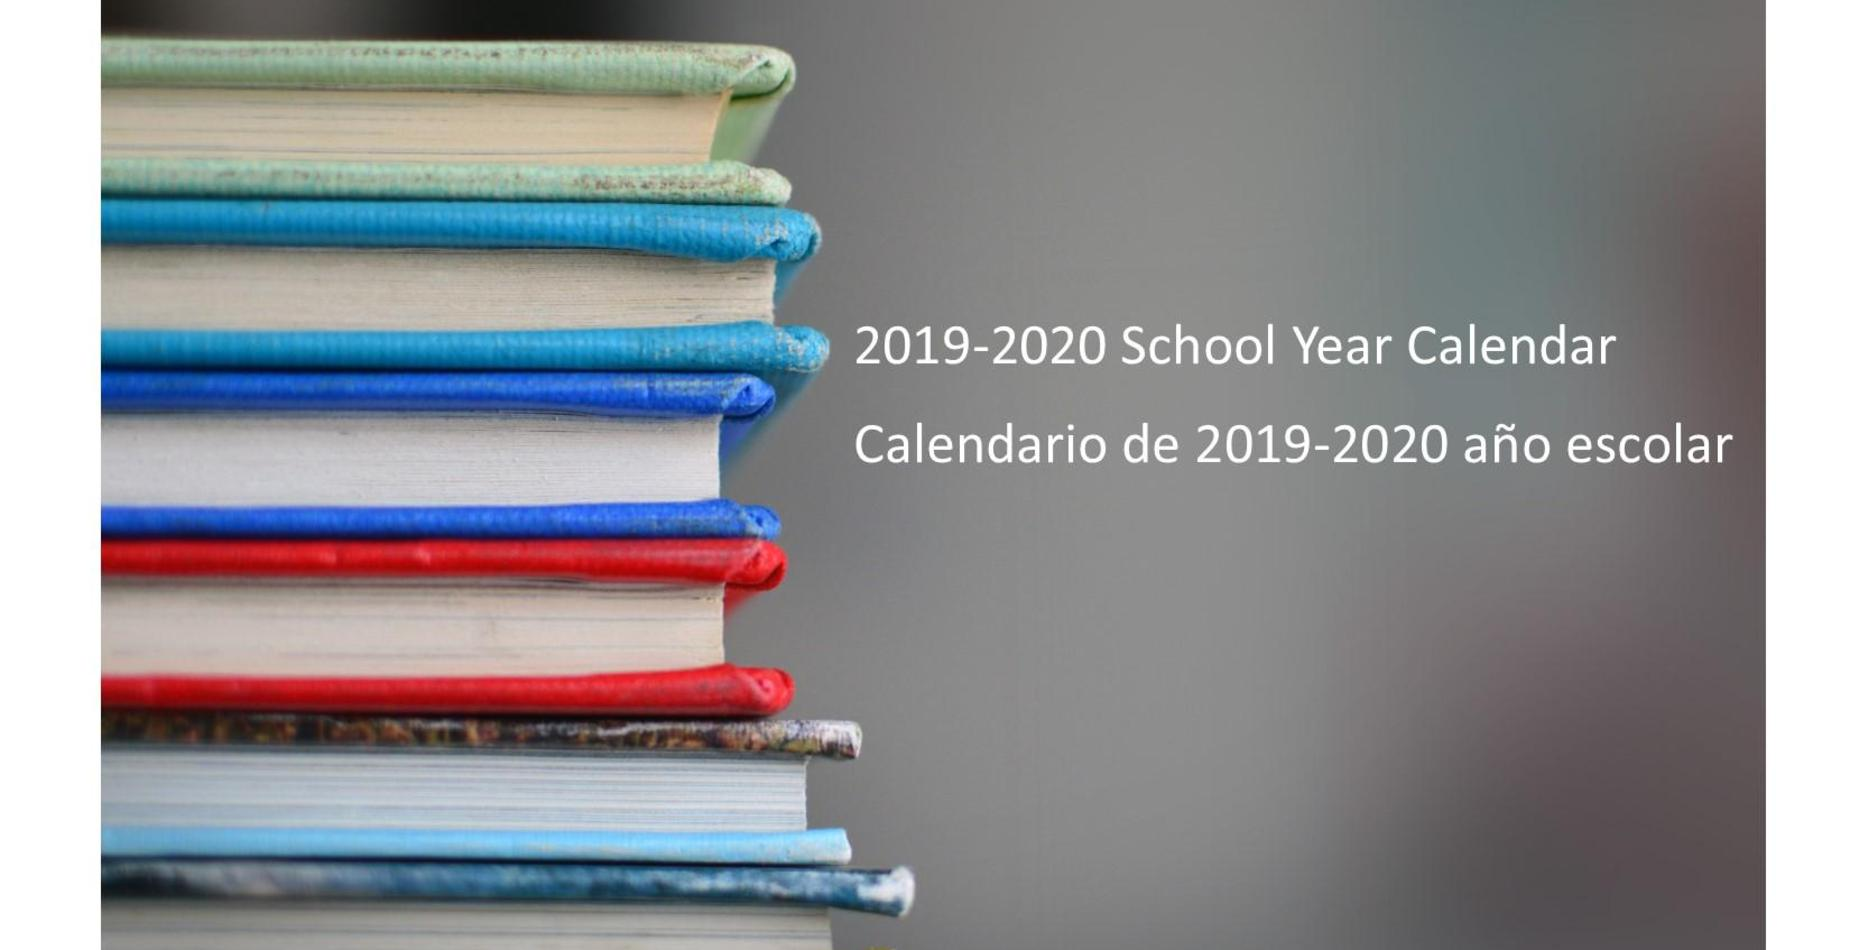 picture of books with information on the 2019-20 school year calendar